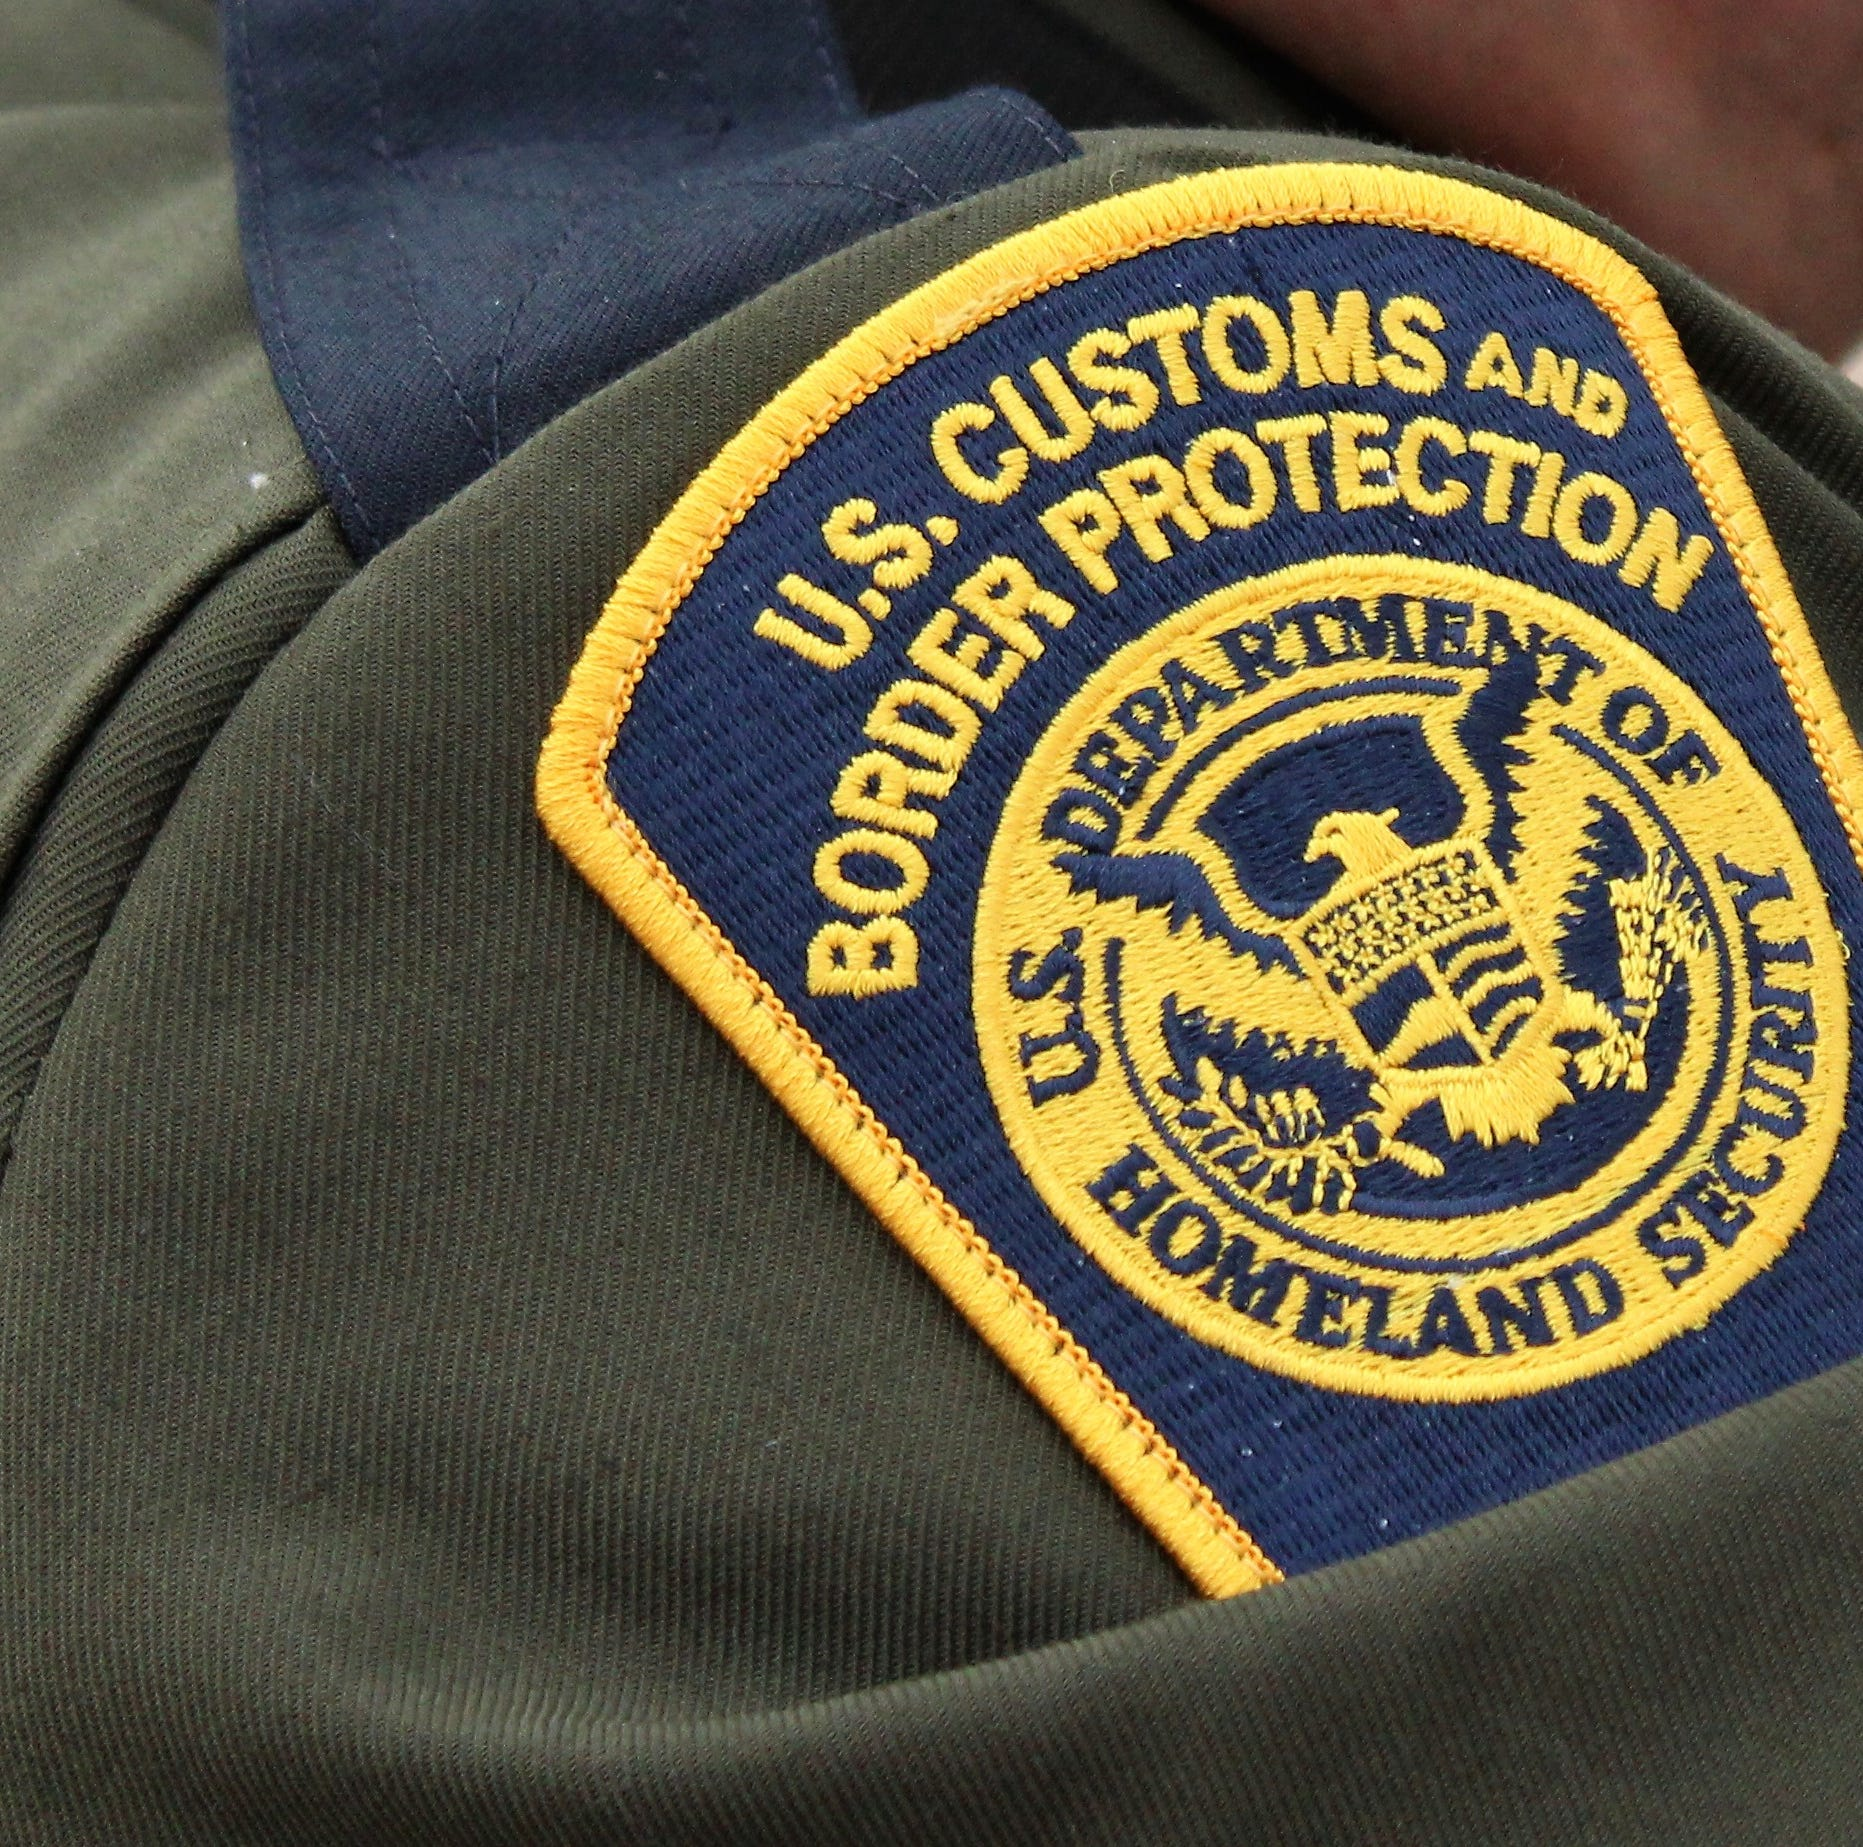 York woman: I had no problem getting through Border Patrol checkpoints - because I'm white